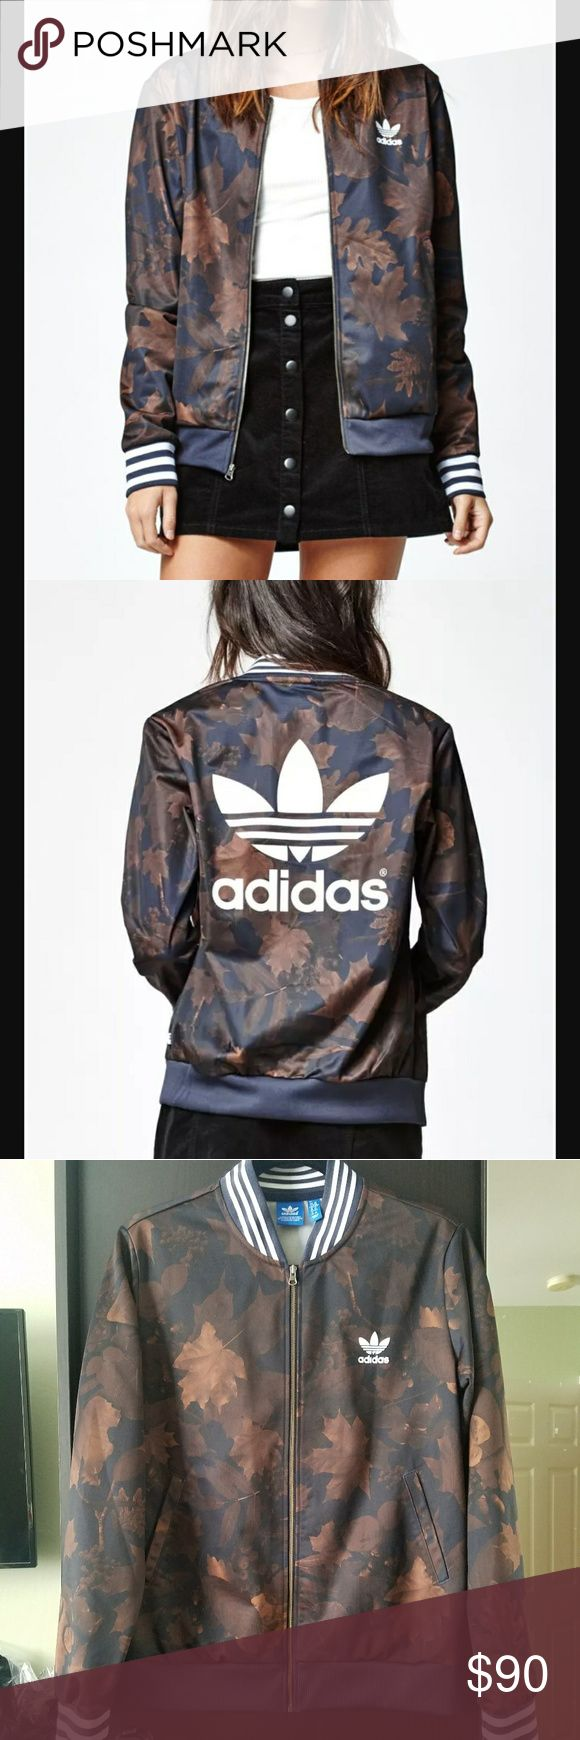 Adidas Leaf/Camo Jacket size M Adidas Leaf/Camo print jacket. Size M. In excellent used condition! adidas Other